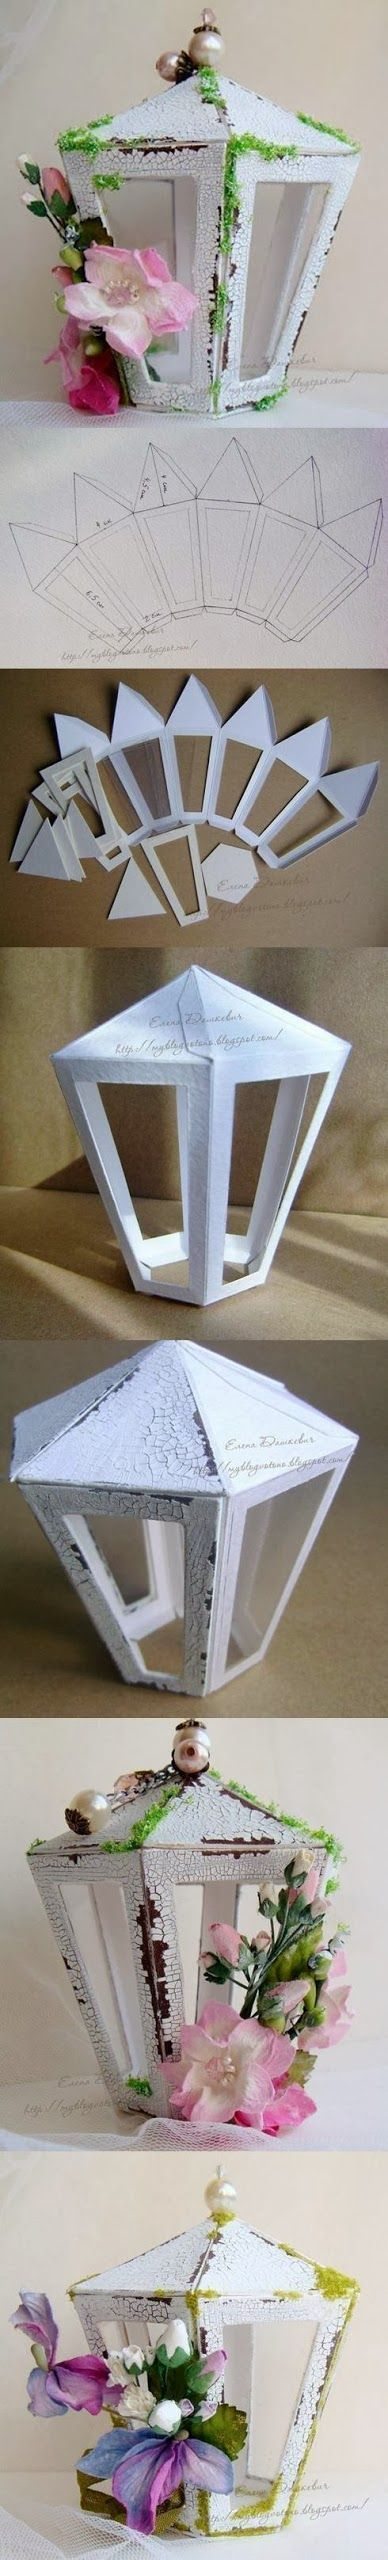 DIY Paper Lantern! Free Pattern...Use Poster Board, Crackle Paint, &…